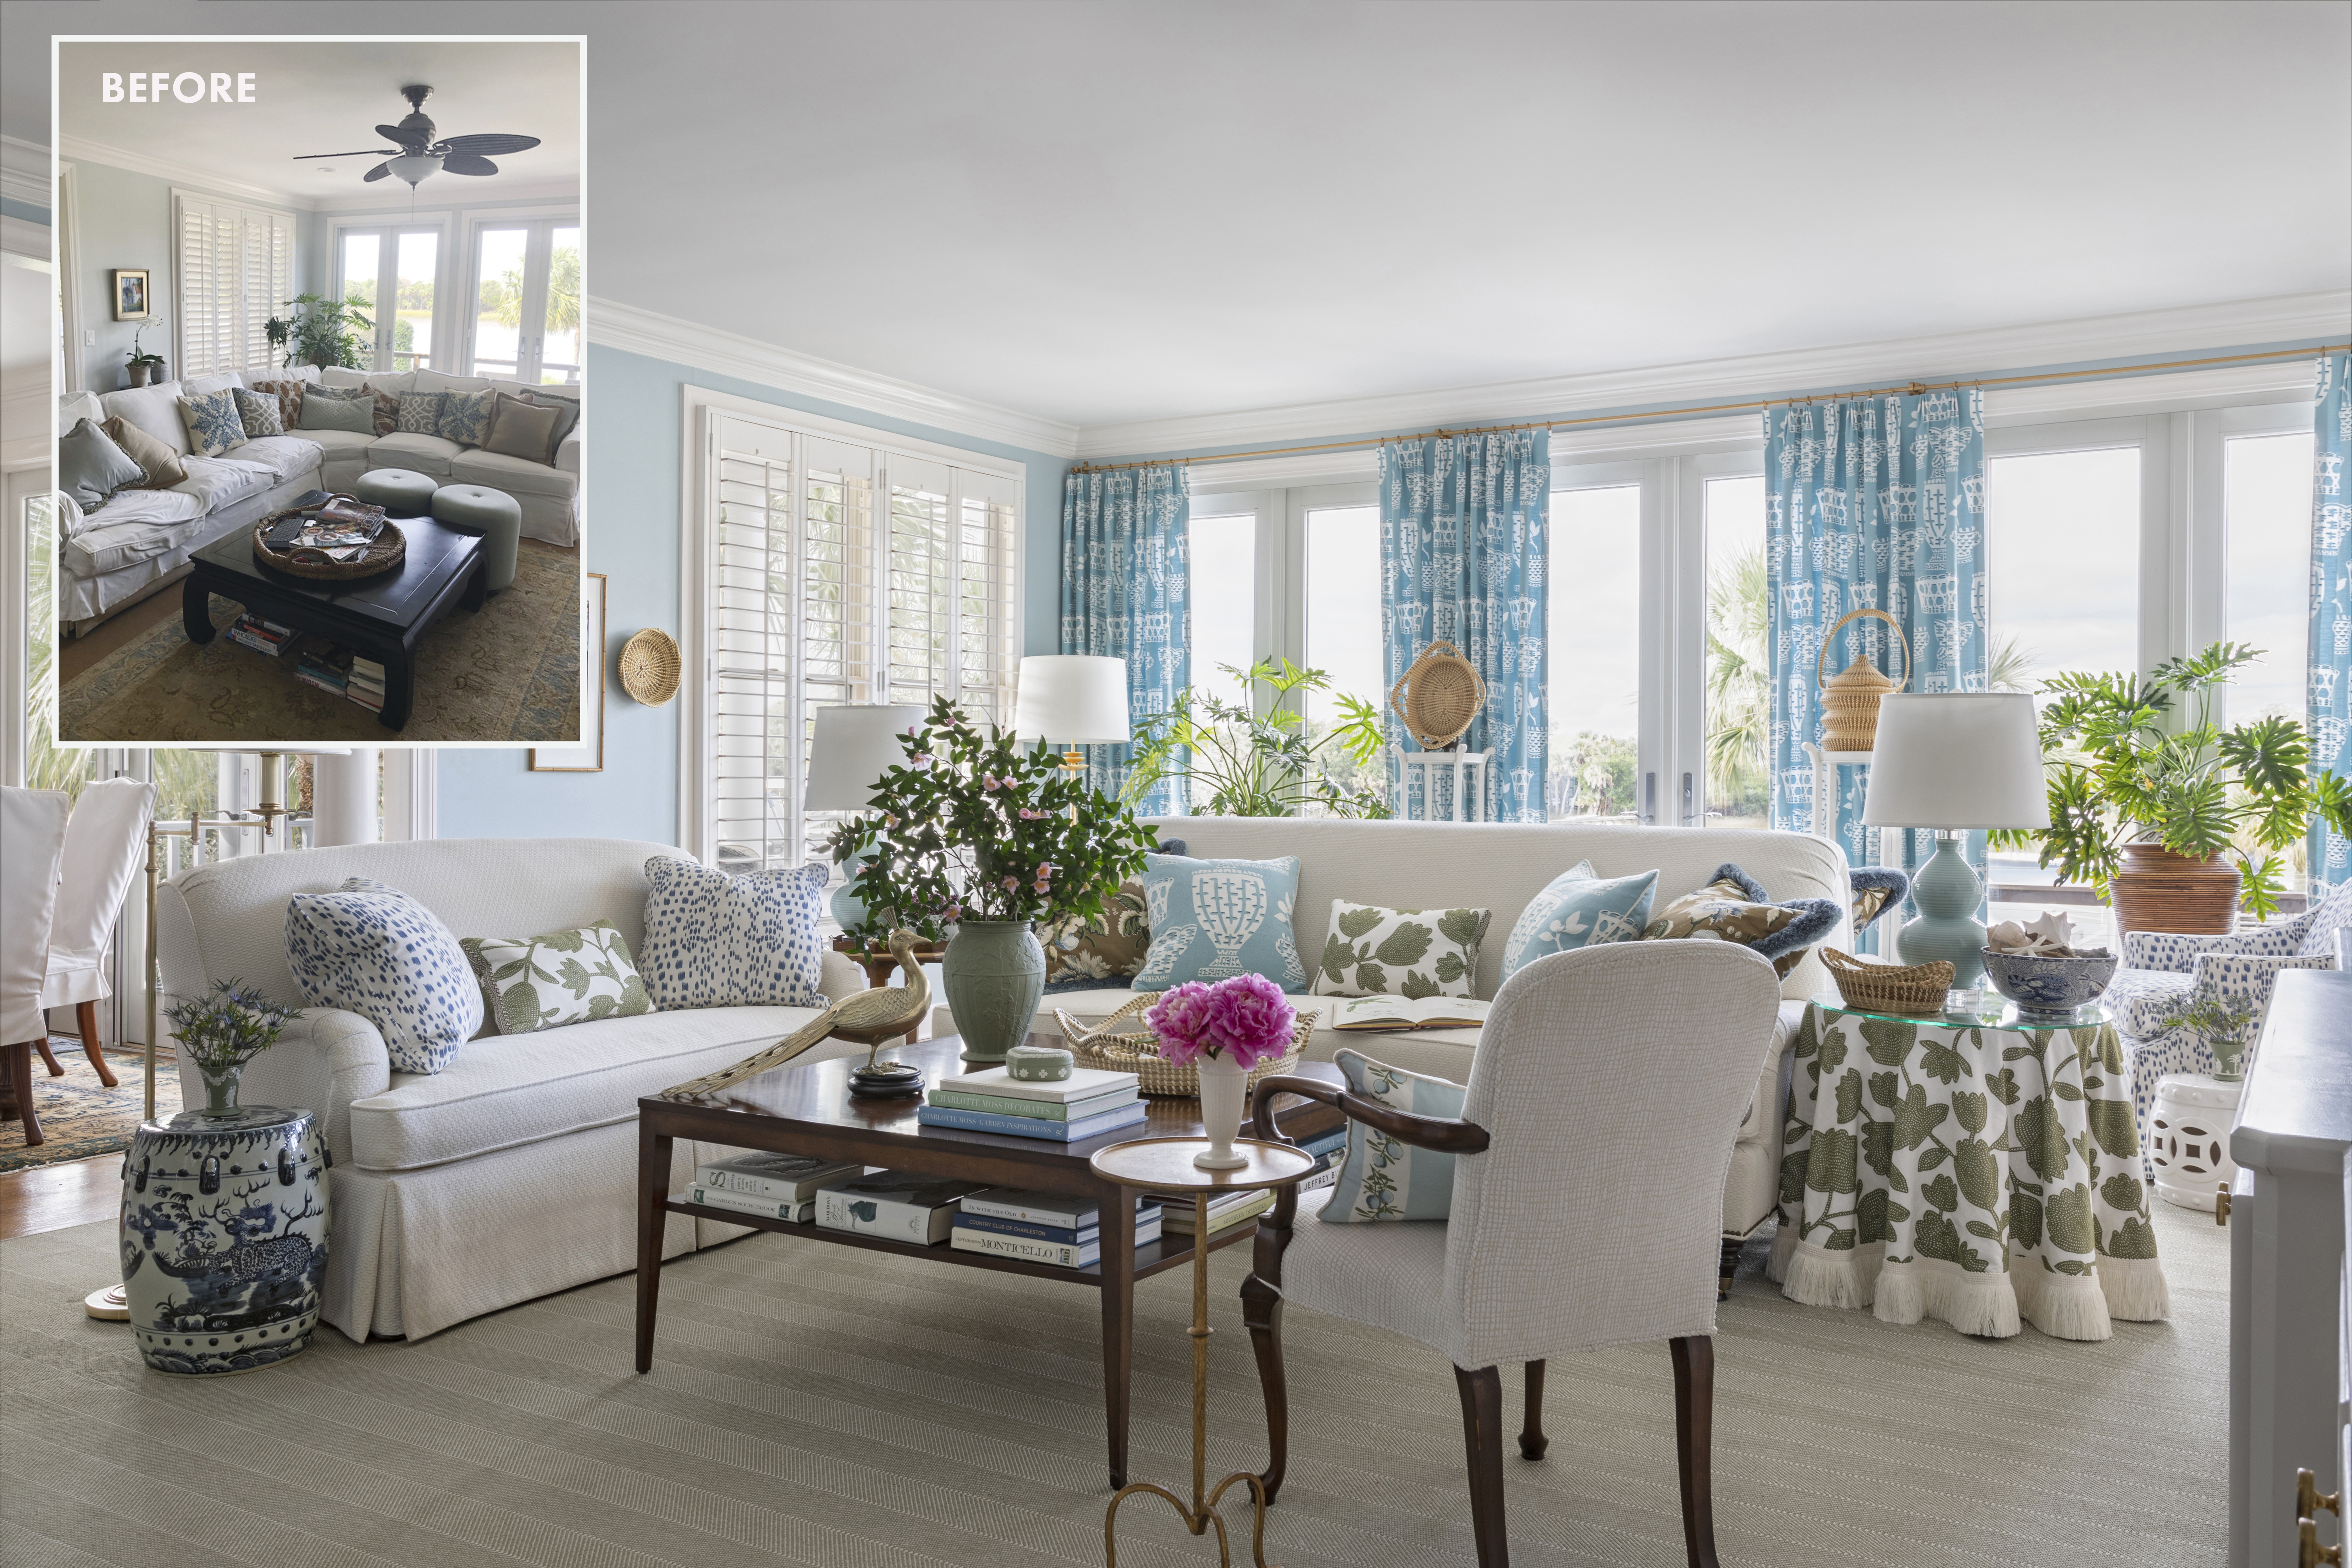 """COASTAL HUES: A palette of blues and greens, inspired by the marsh and Intracoastal Waterway views, was infused into this now light and bright living room through custom pillows in a variety of fabrics and trims. The pattern play pulls from and contrasts with the Charlotte Moss """"Caroline"""" drapes that dominate the room, changing in scale and function as it moves from the drapes to the sofas..."""